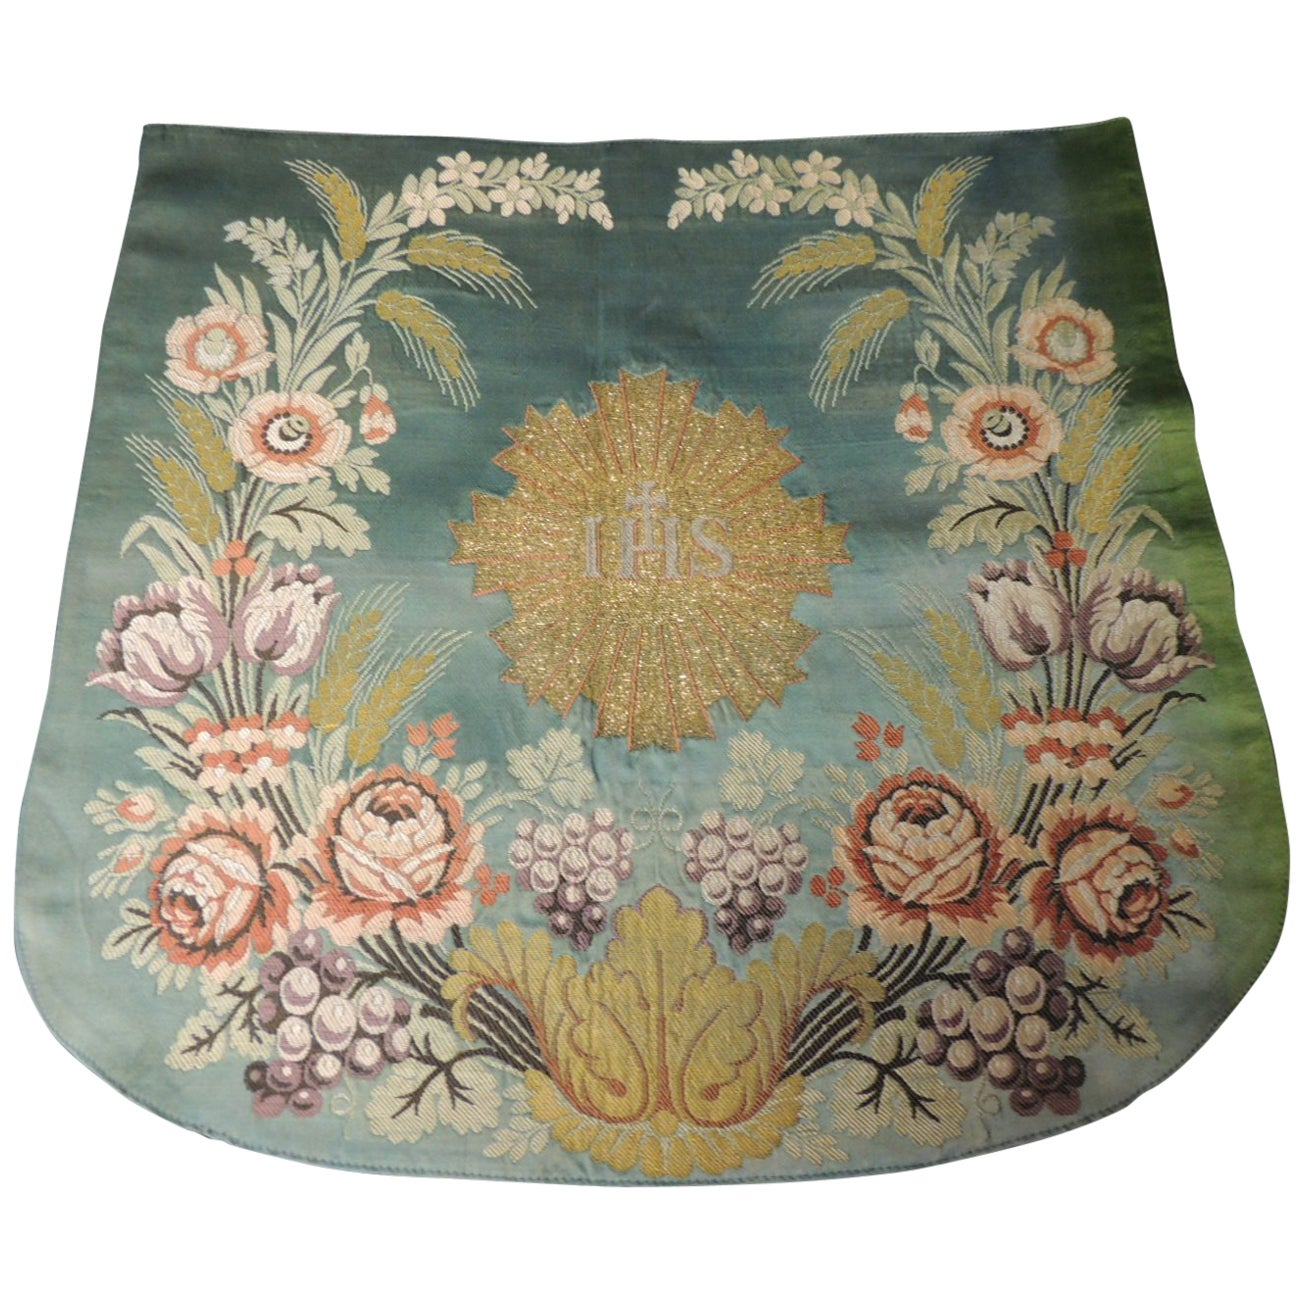 Antique Green and Gold Ecclesiastical Embroidery Brocade Altar Cloth or Banner